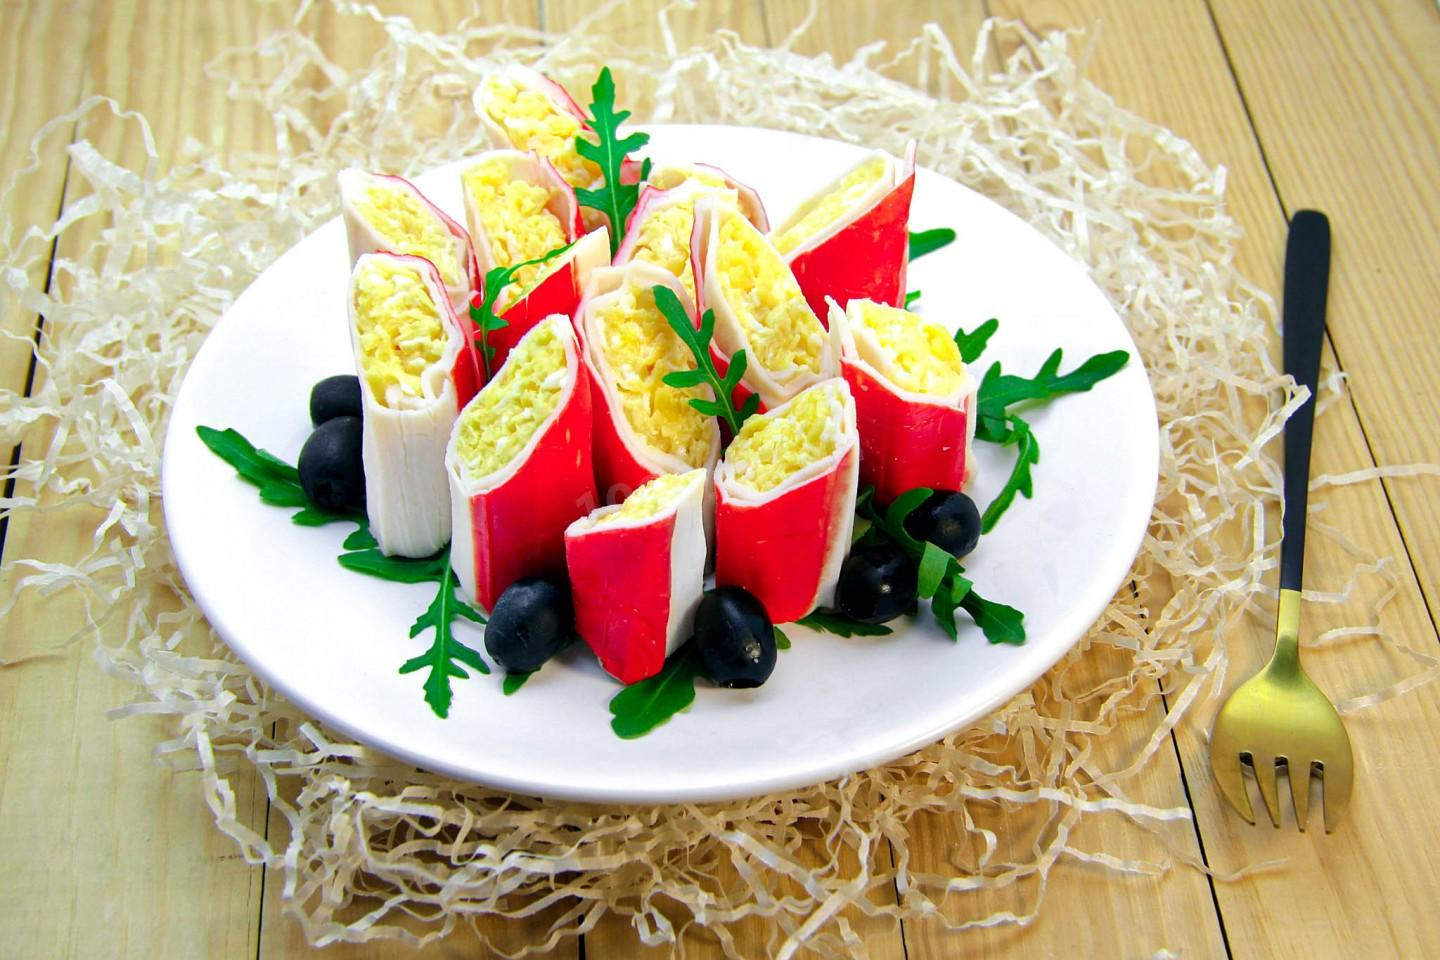 CRAB STICKS WITH CHEESE AND EGG SNAP